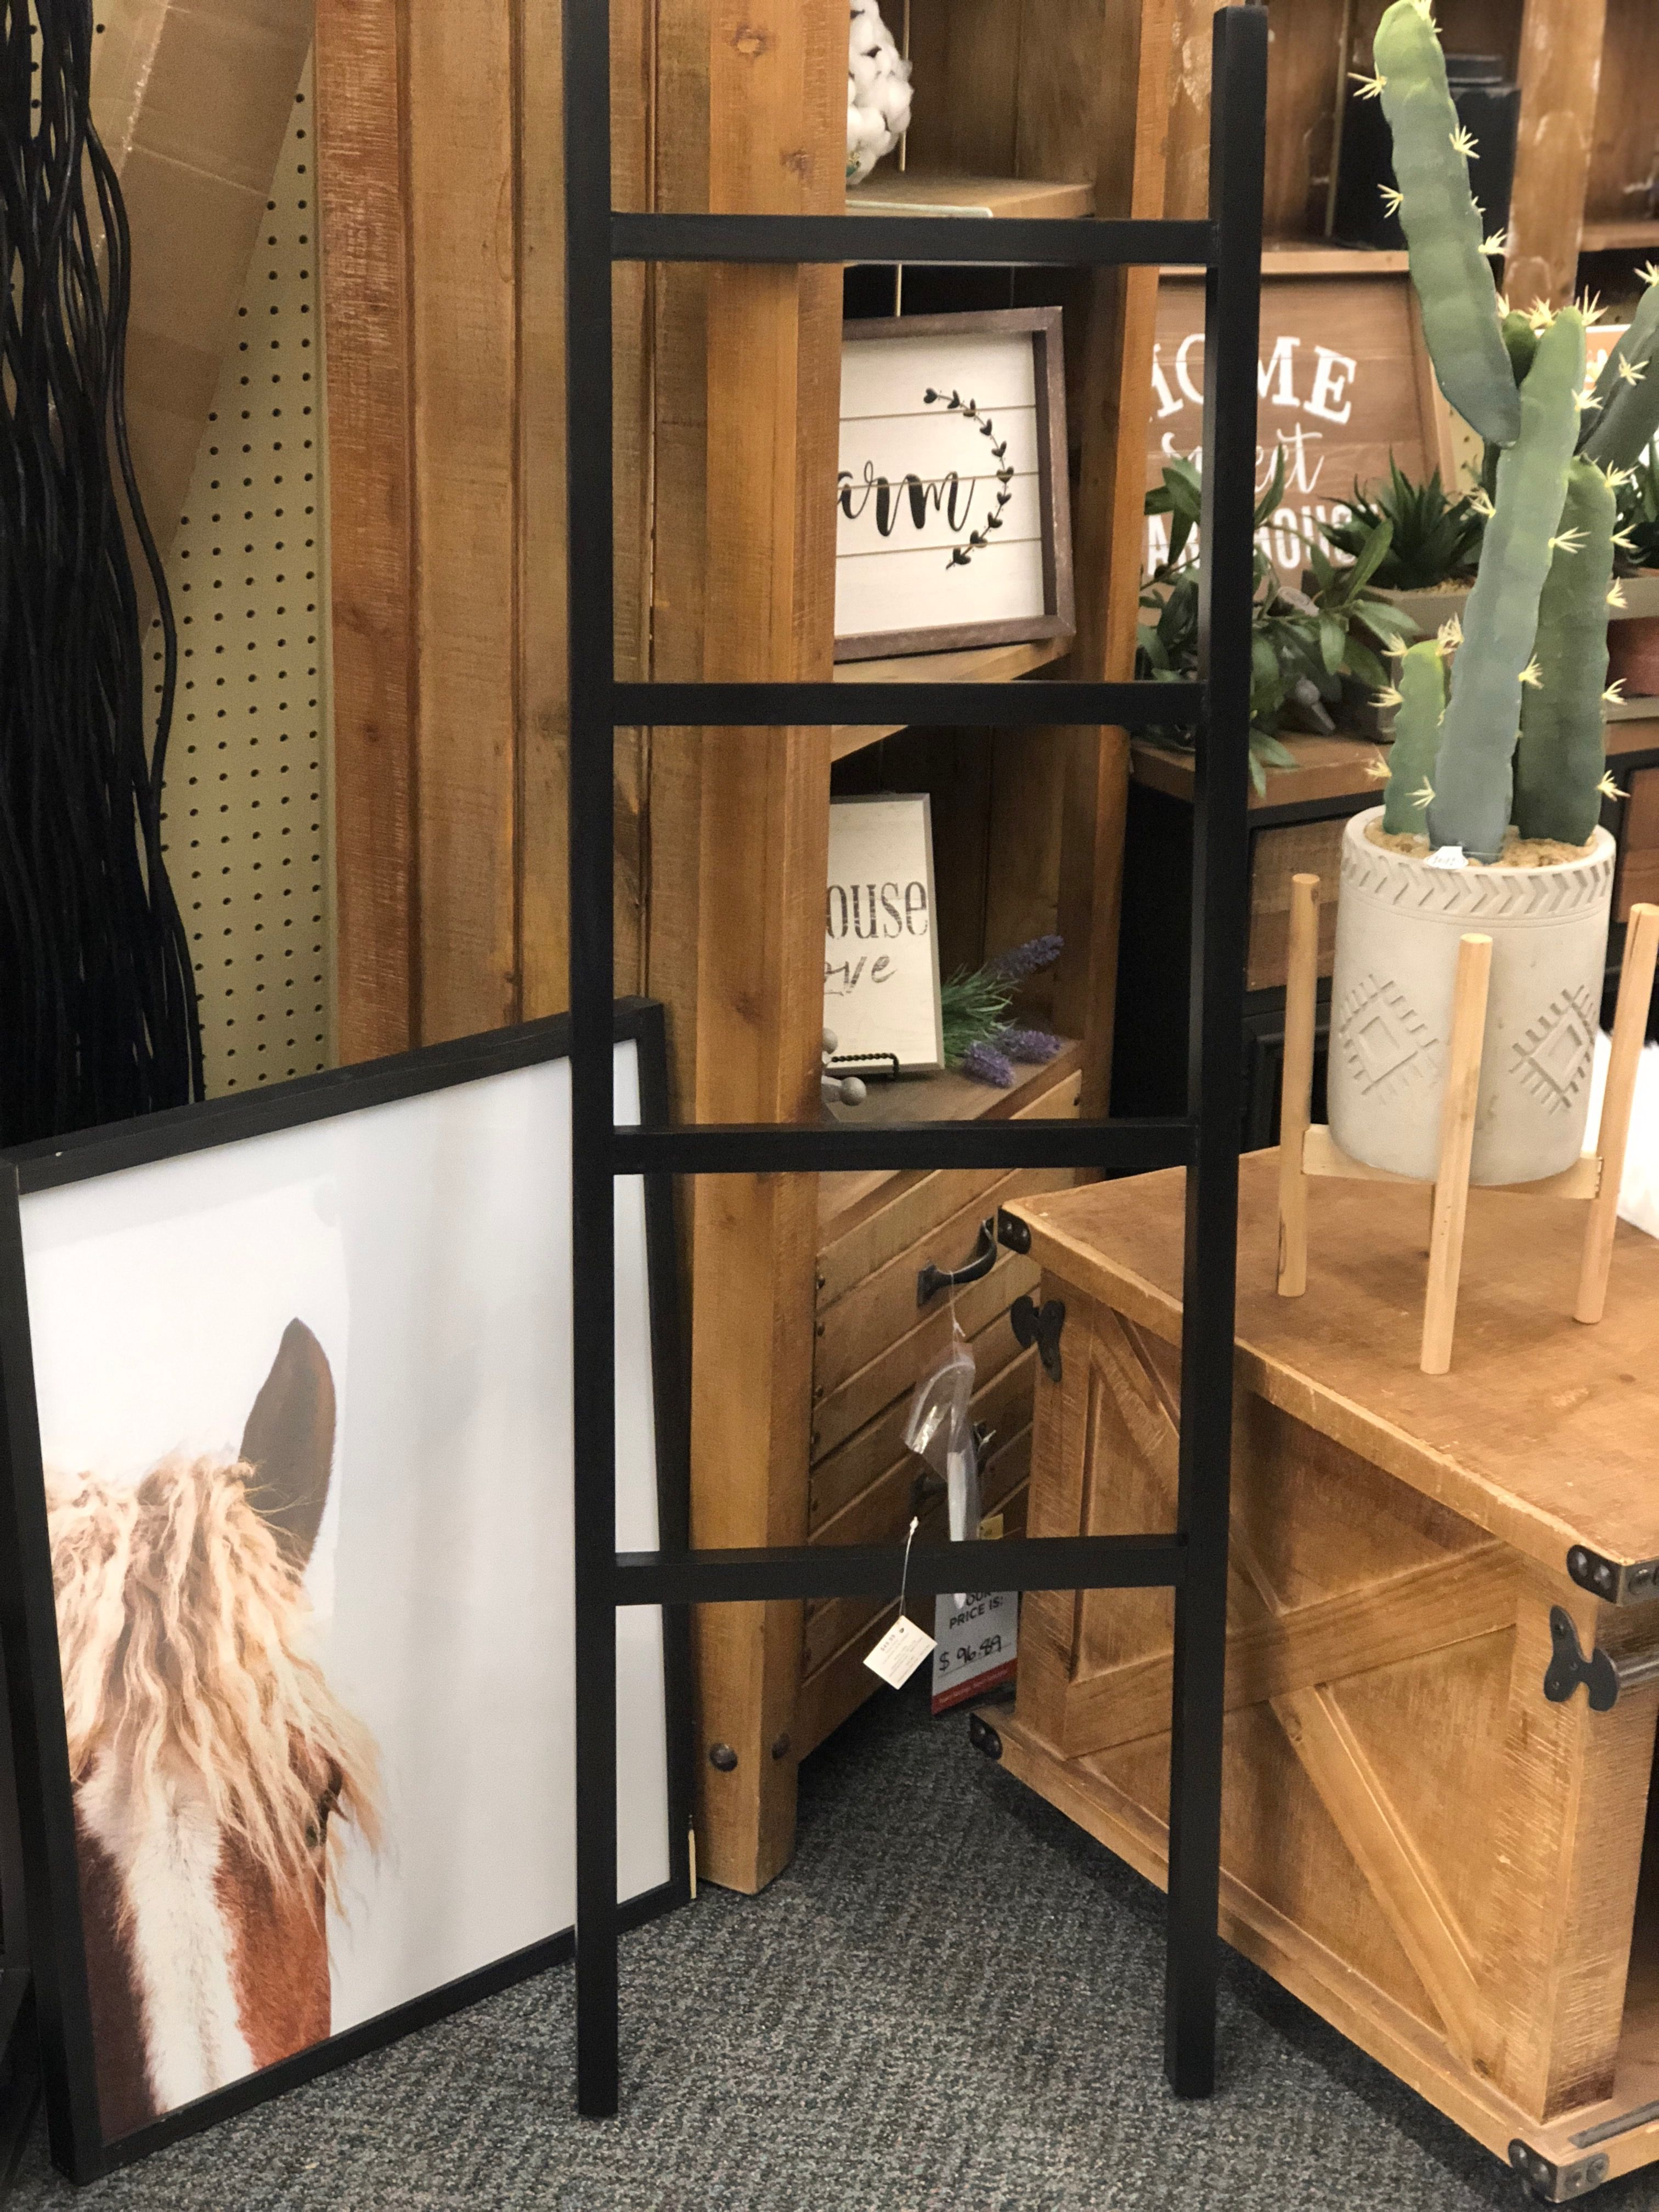 Spotted At Hobbylobby This Modern Ladder It Would Be Beautiful To Hang Blankets On Or Just Lean Against A Wall For A Modern Farmhouse Look